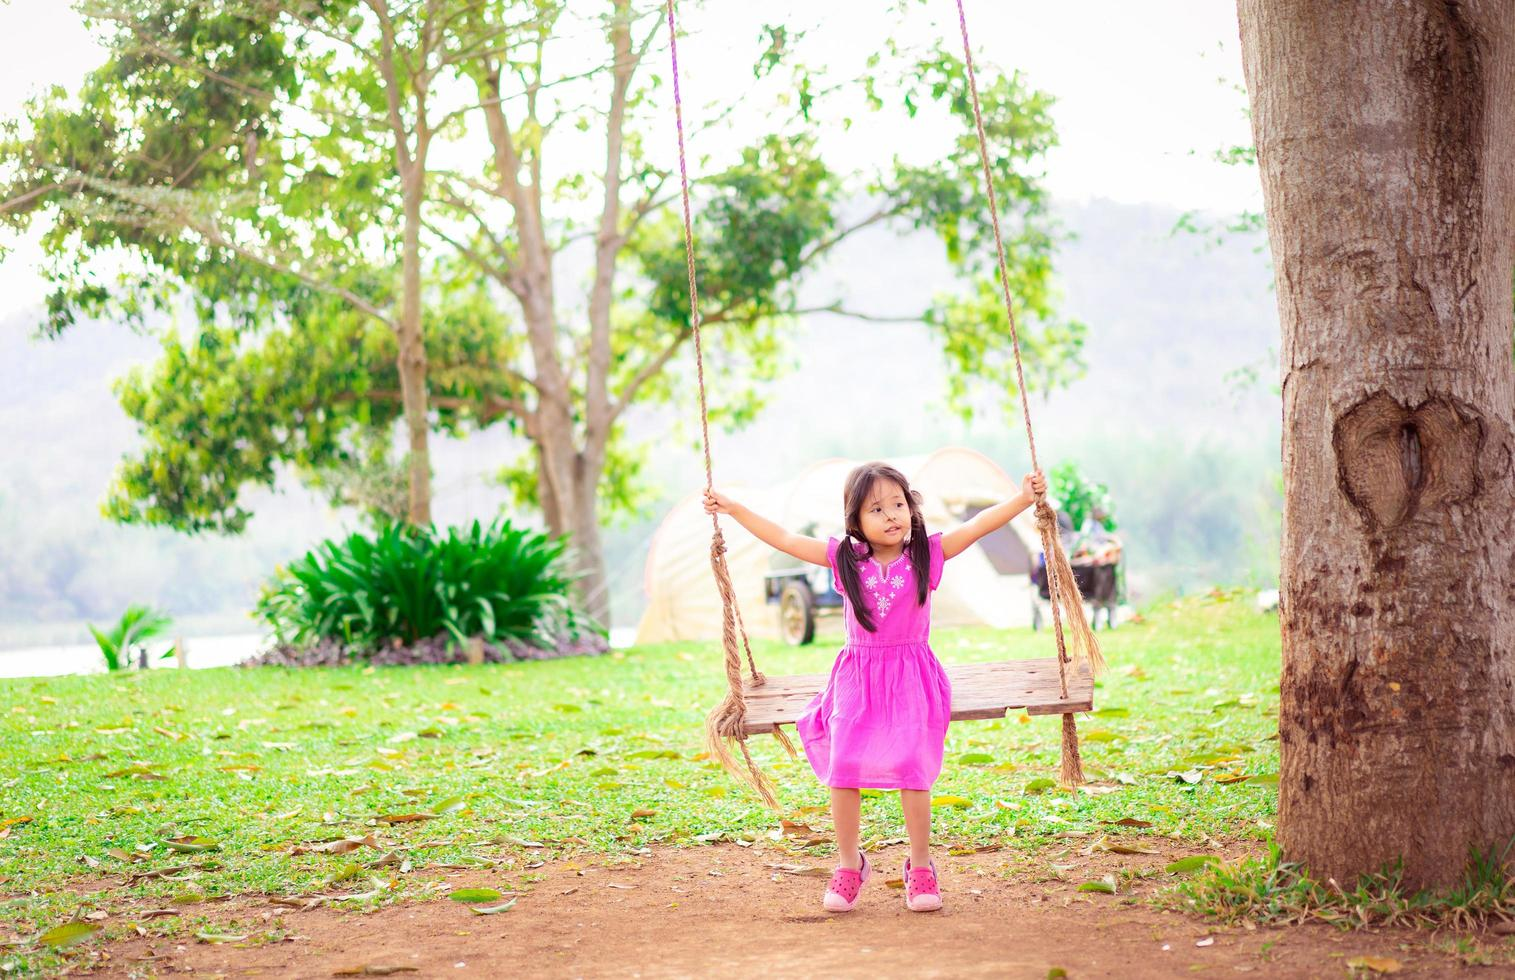 Young Asian girl in tree swing photo